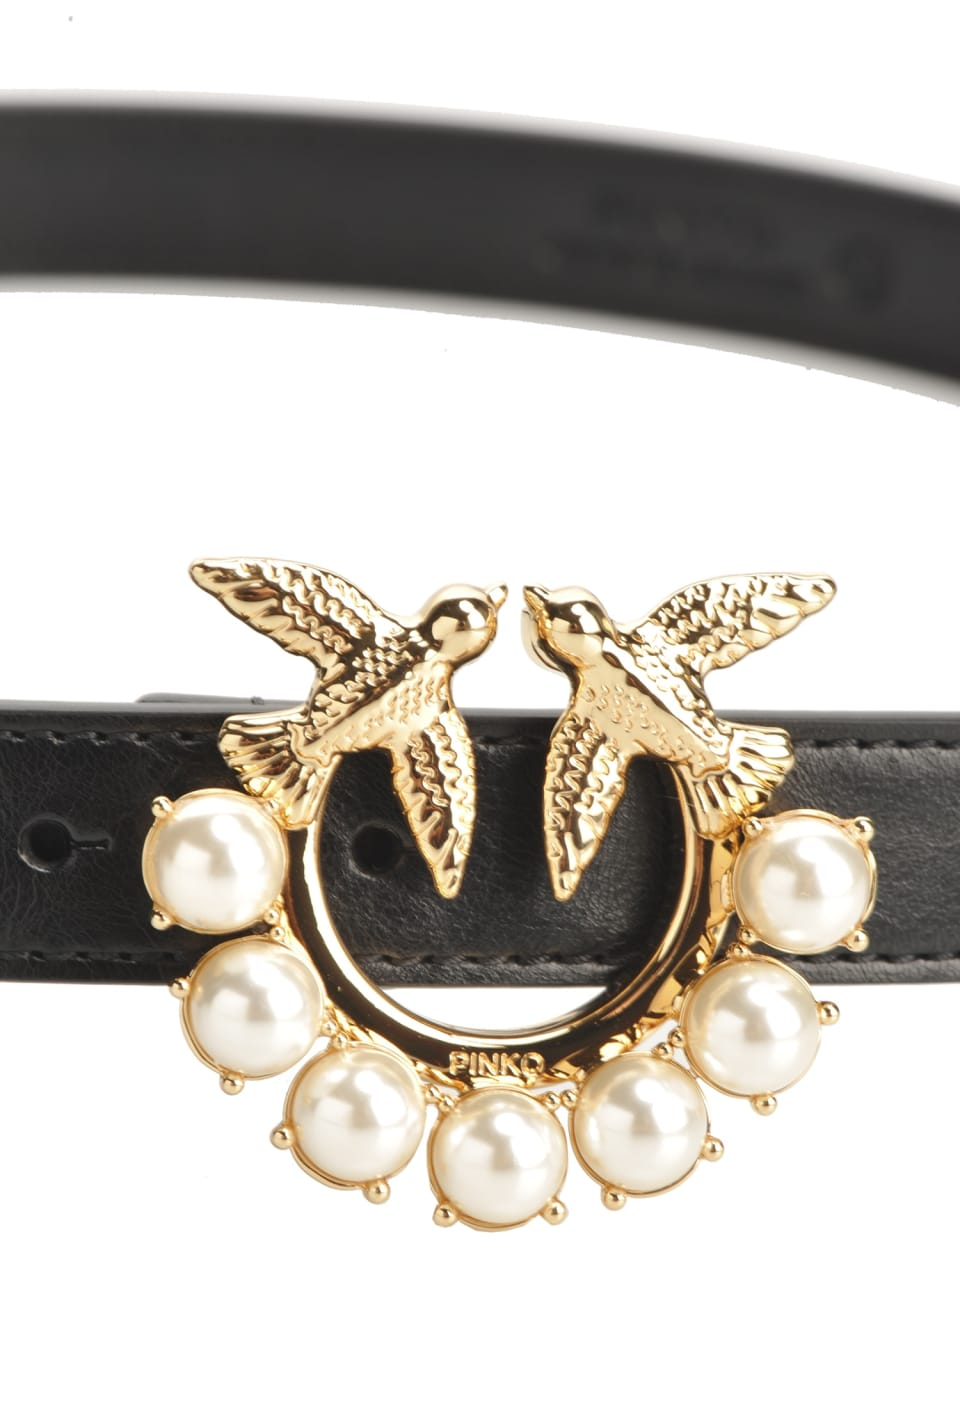 Vintage belt with Love Birds buckle and pearls - Pinko